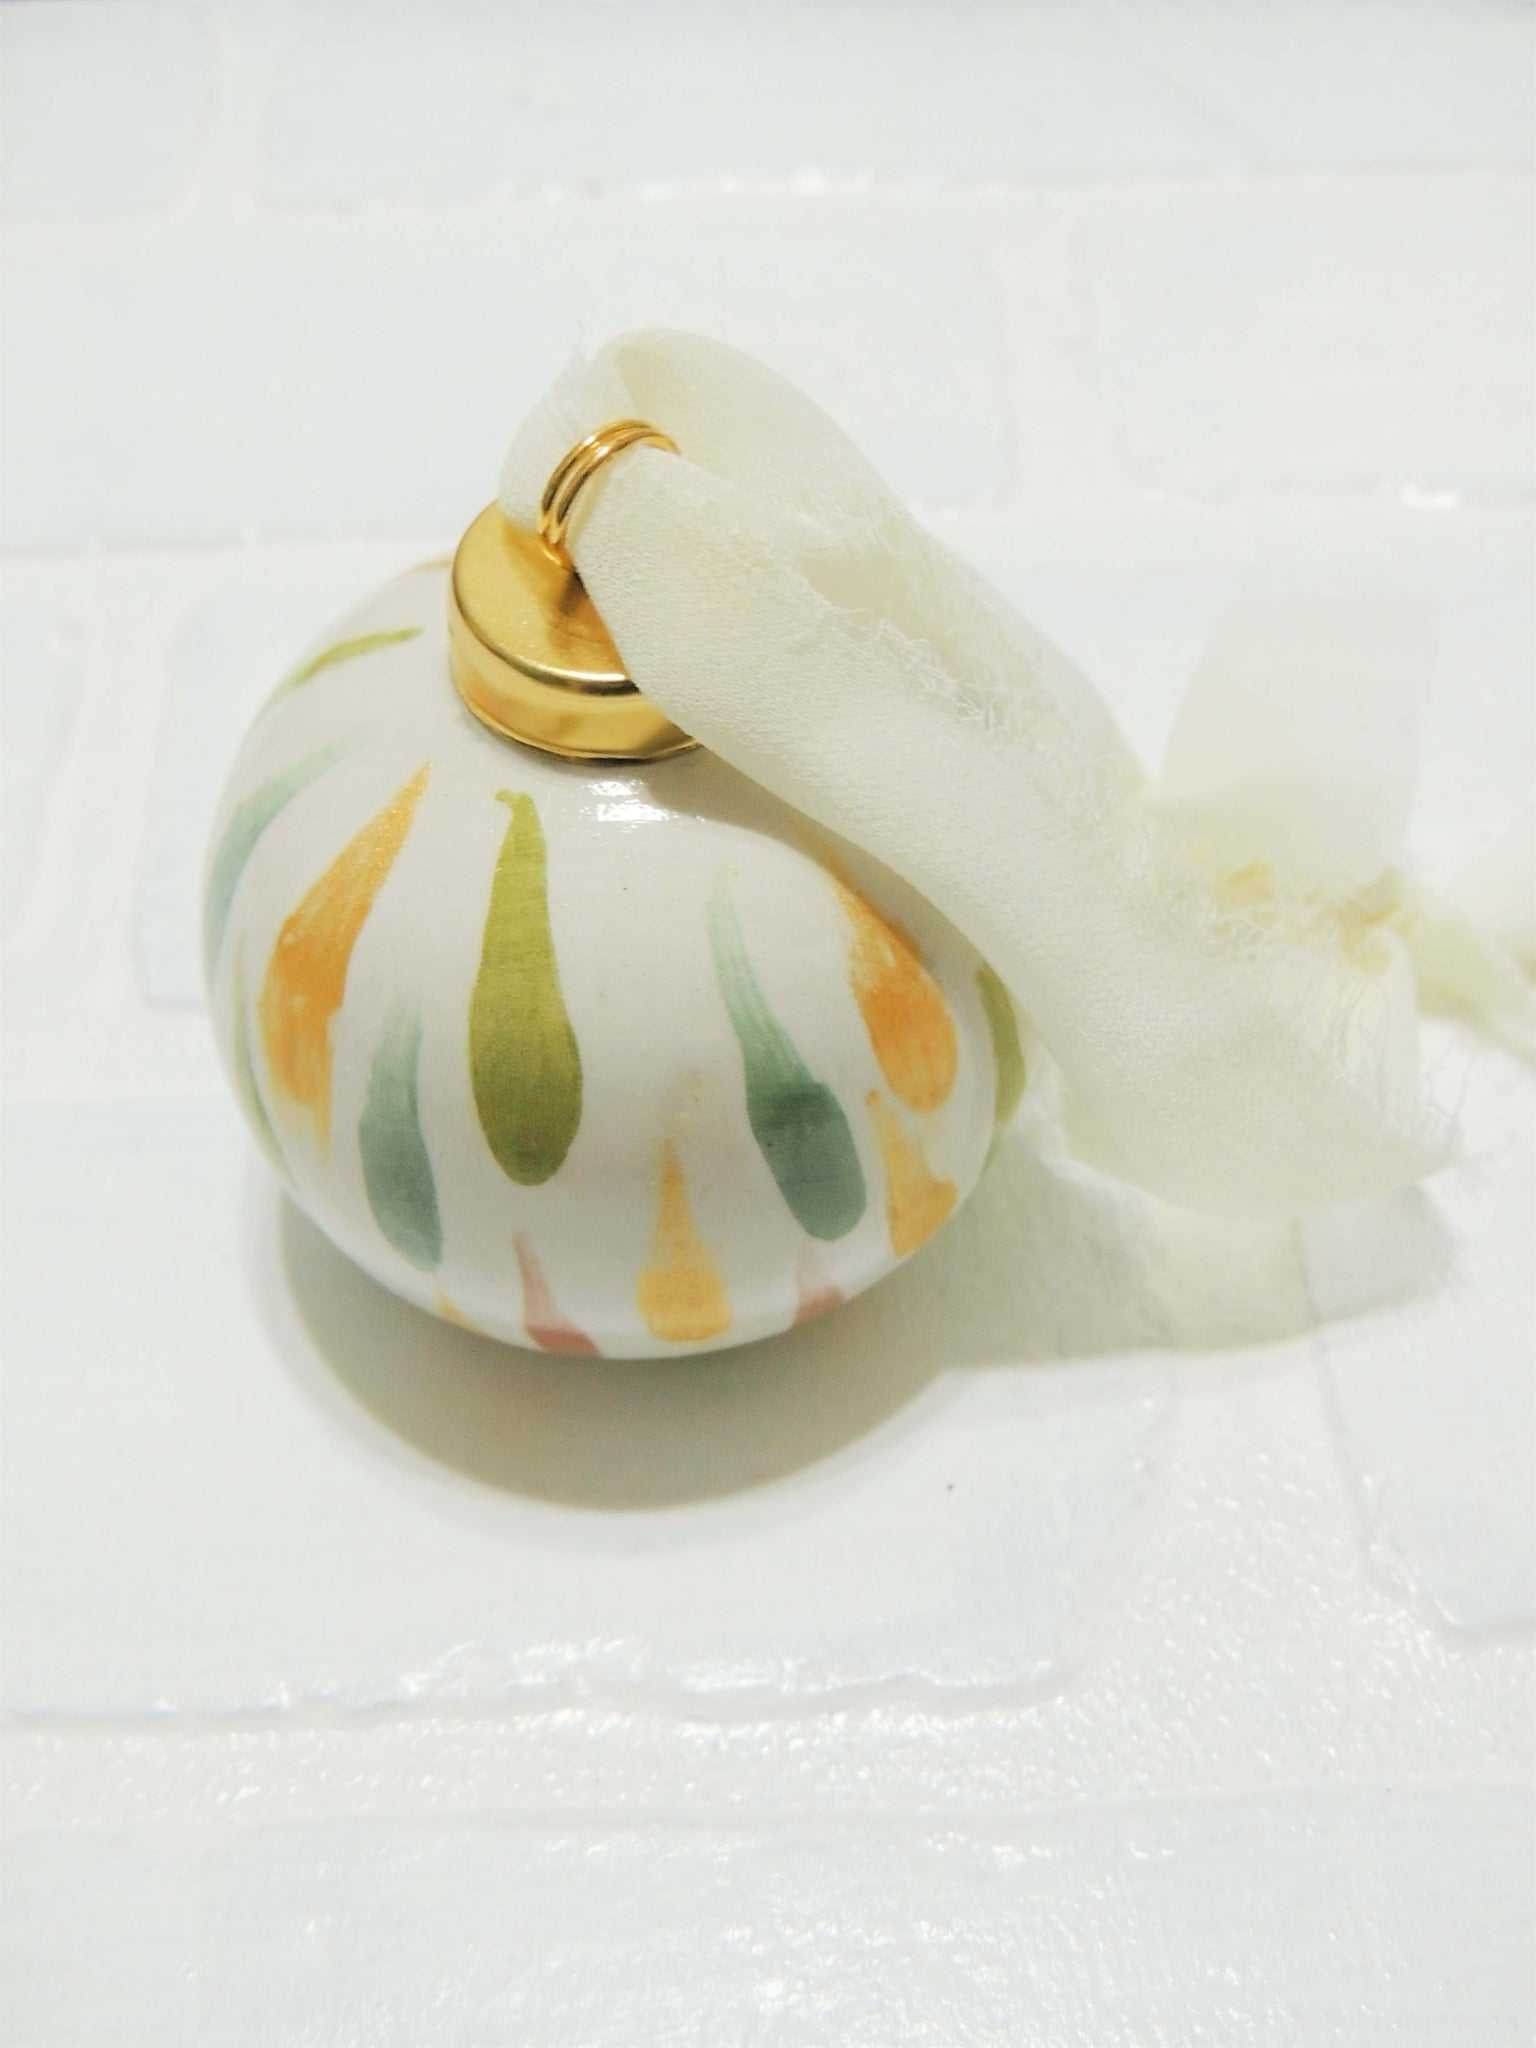 Millie | hand painted ceramic ornament | Beverly Gurganus Fine Art